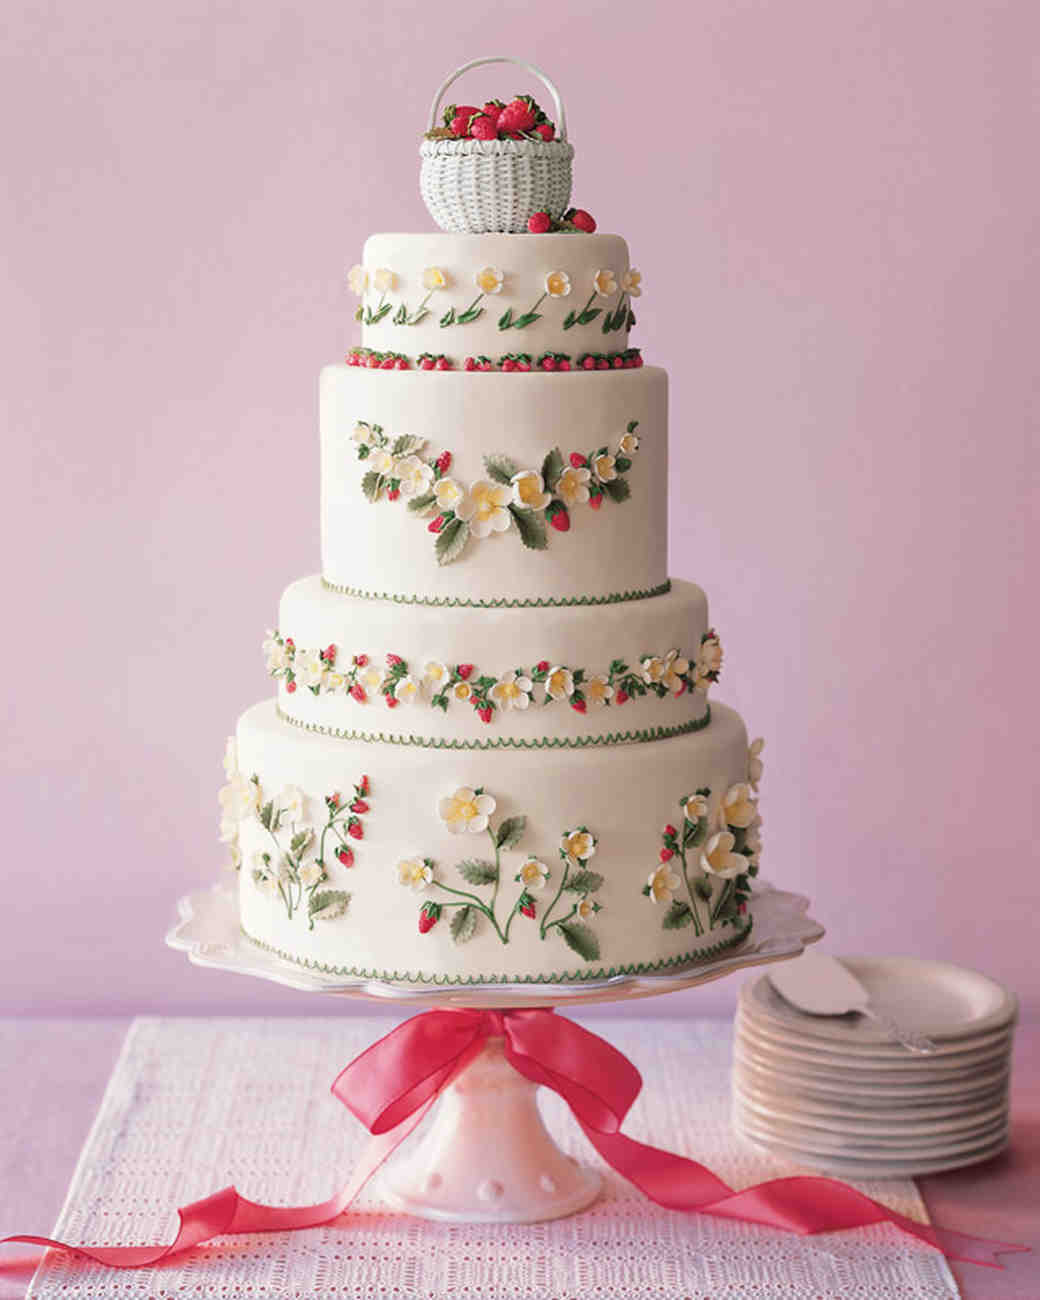 Strawberry Wedding Cake  45 Wedding Cakes With Sugar Flowers That Look Stunningly